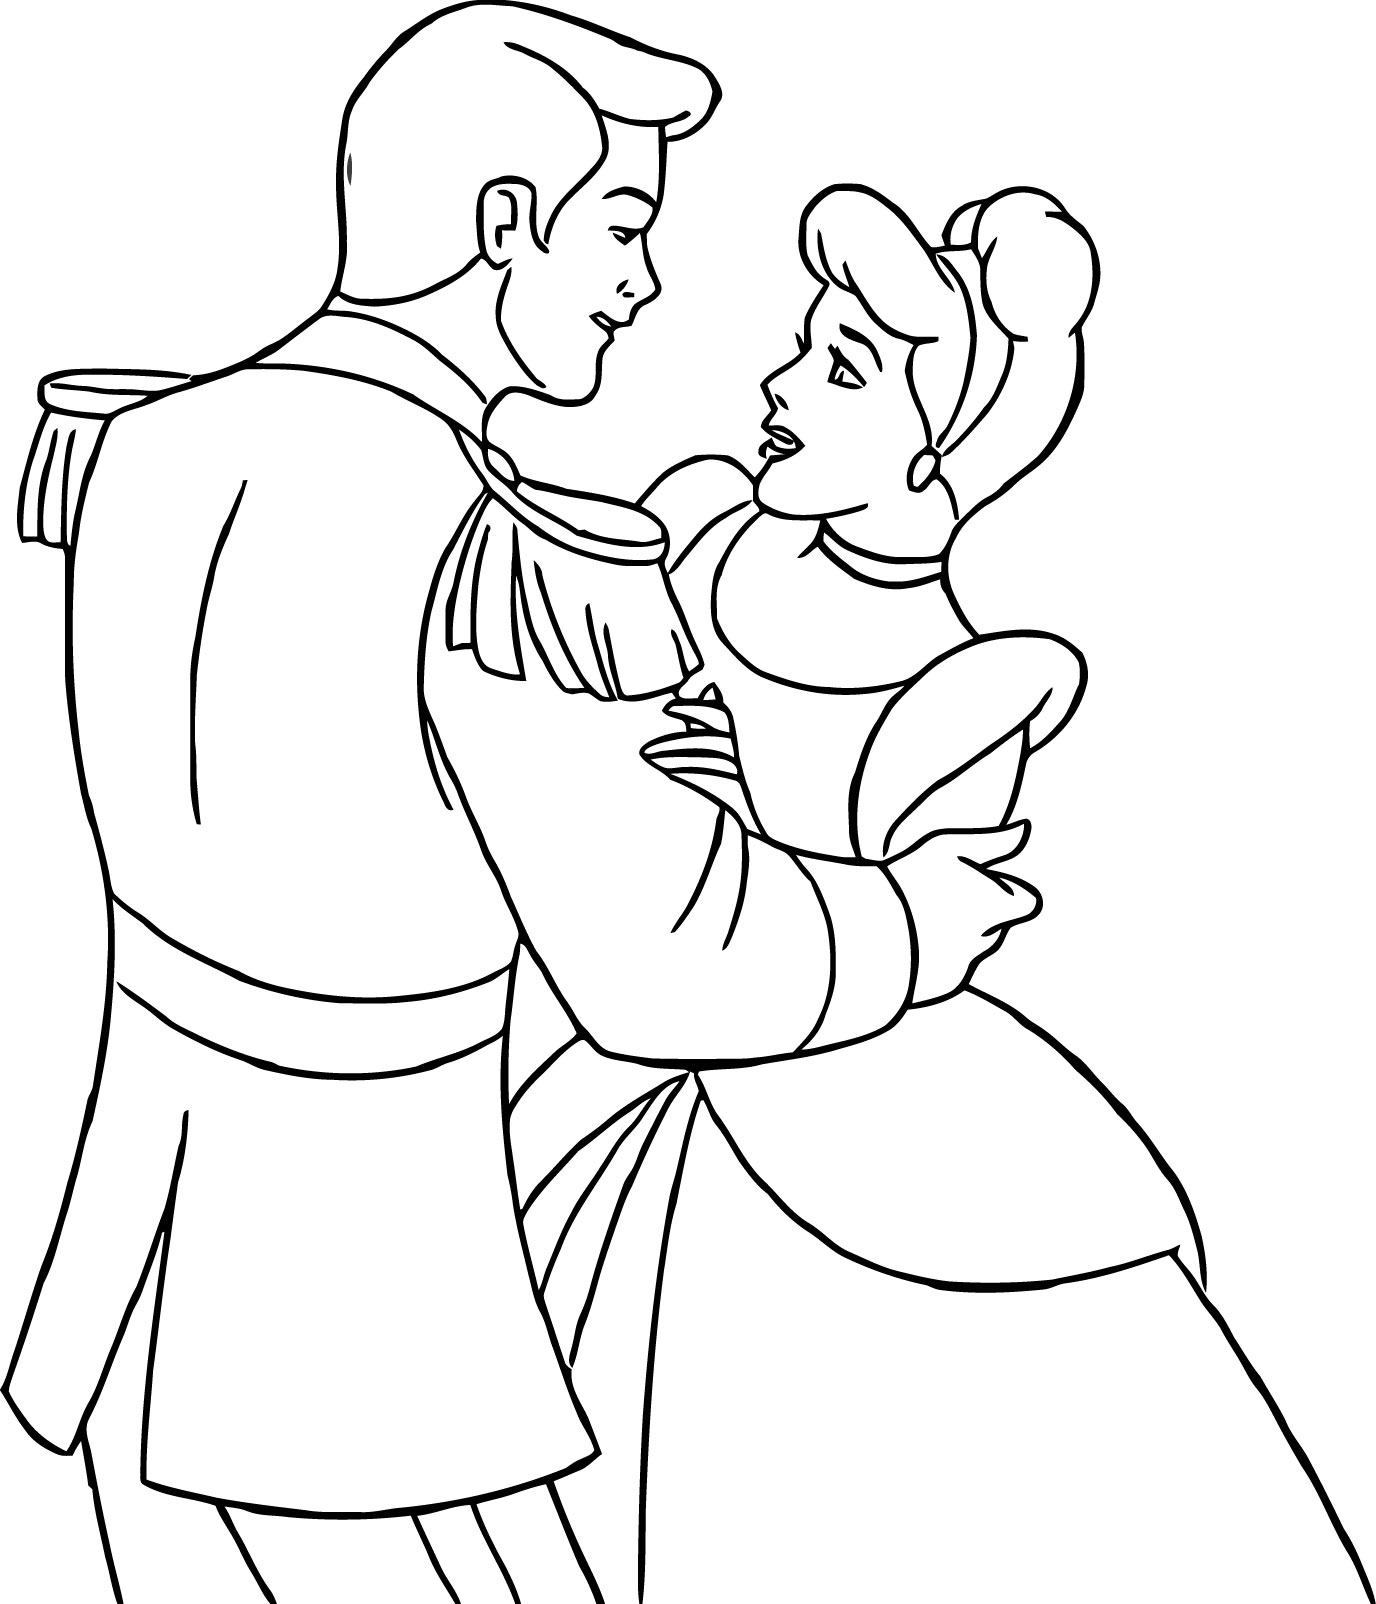 cinderella and prince charming coloring pages wecoloringpage